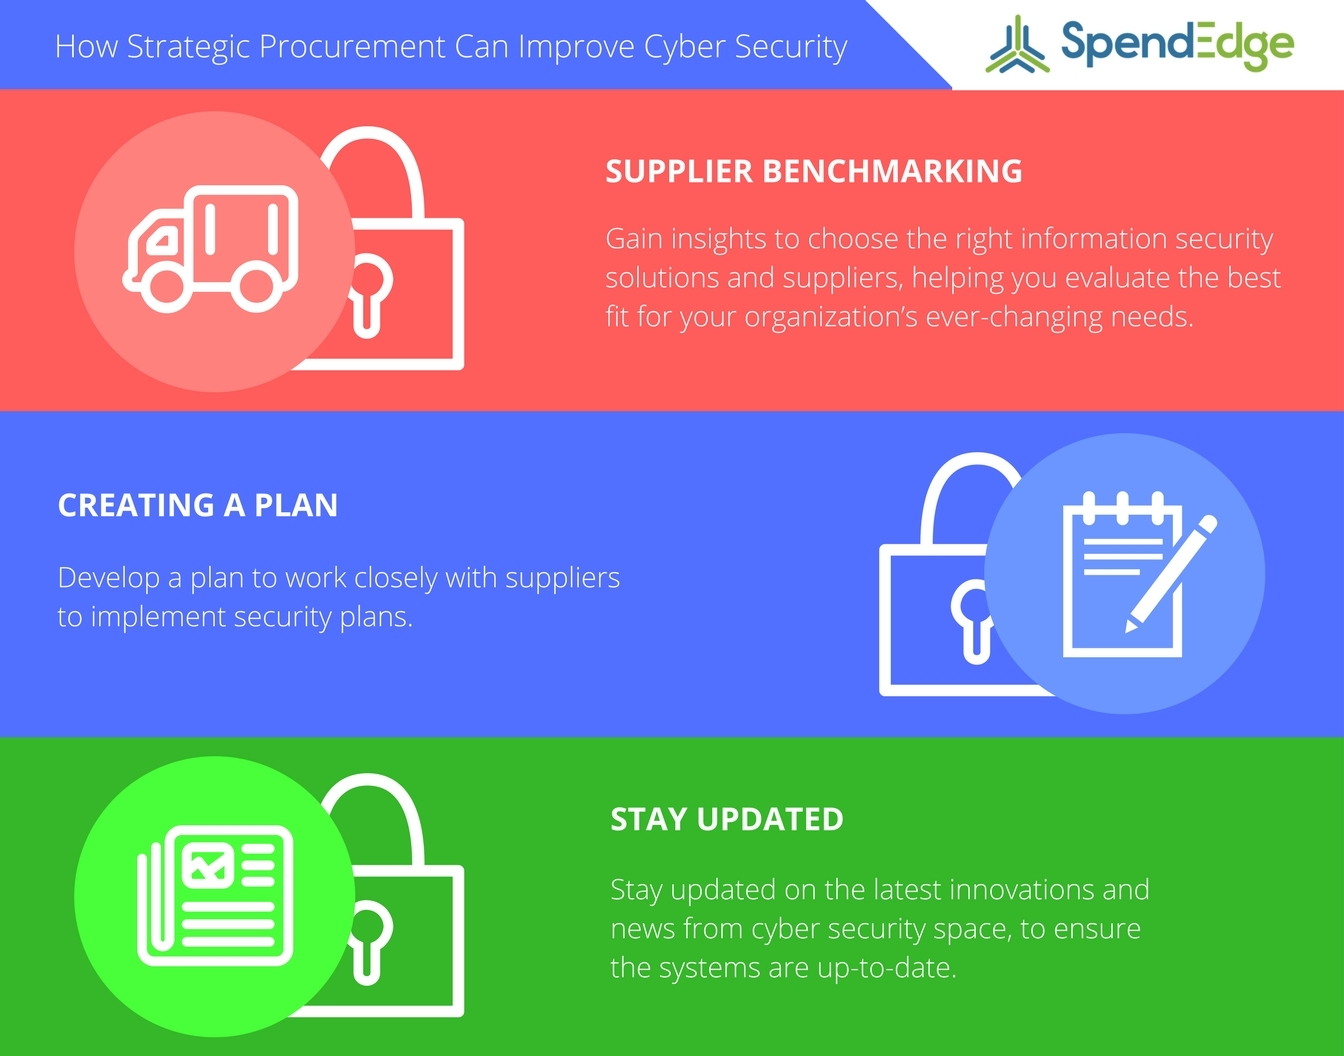 SpendEdge provides their insights on how strategic procurement can help protect against cyber threats. (Graphic: Business Wire)